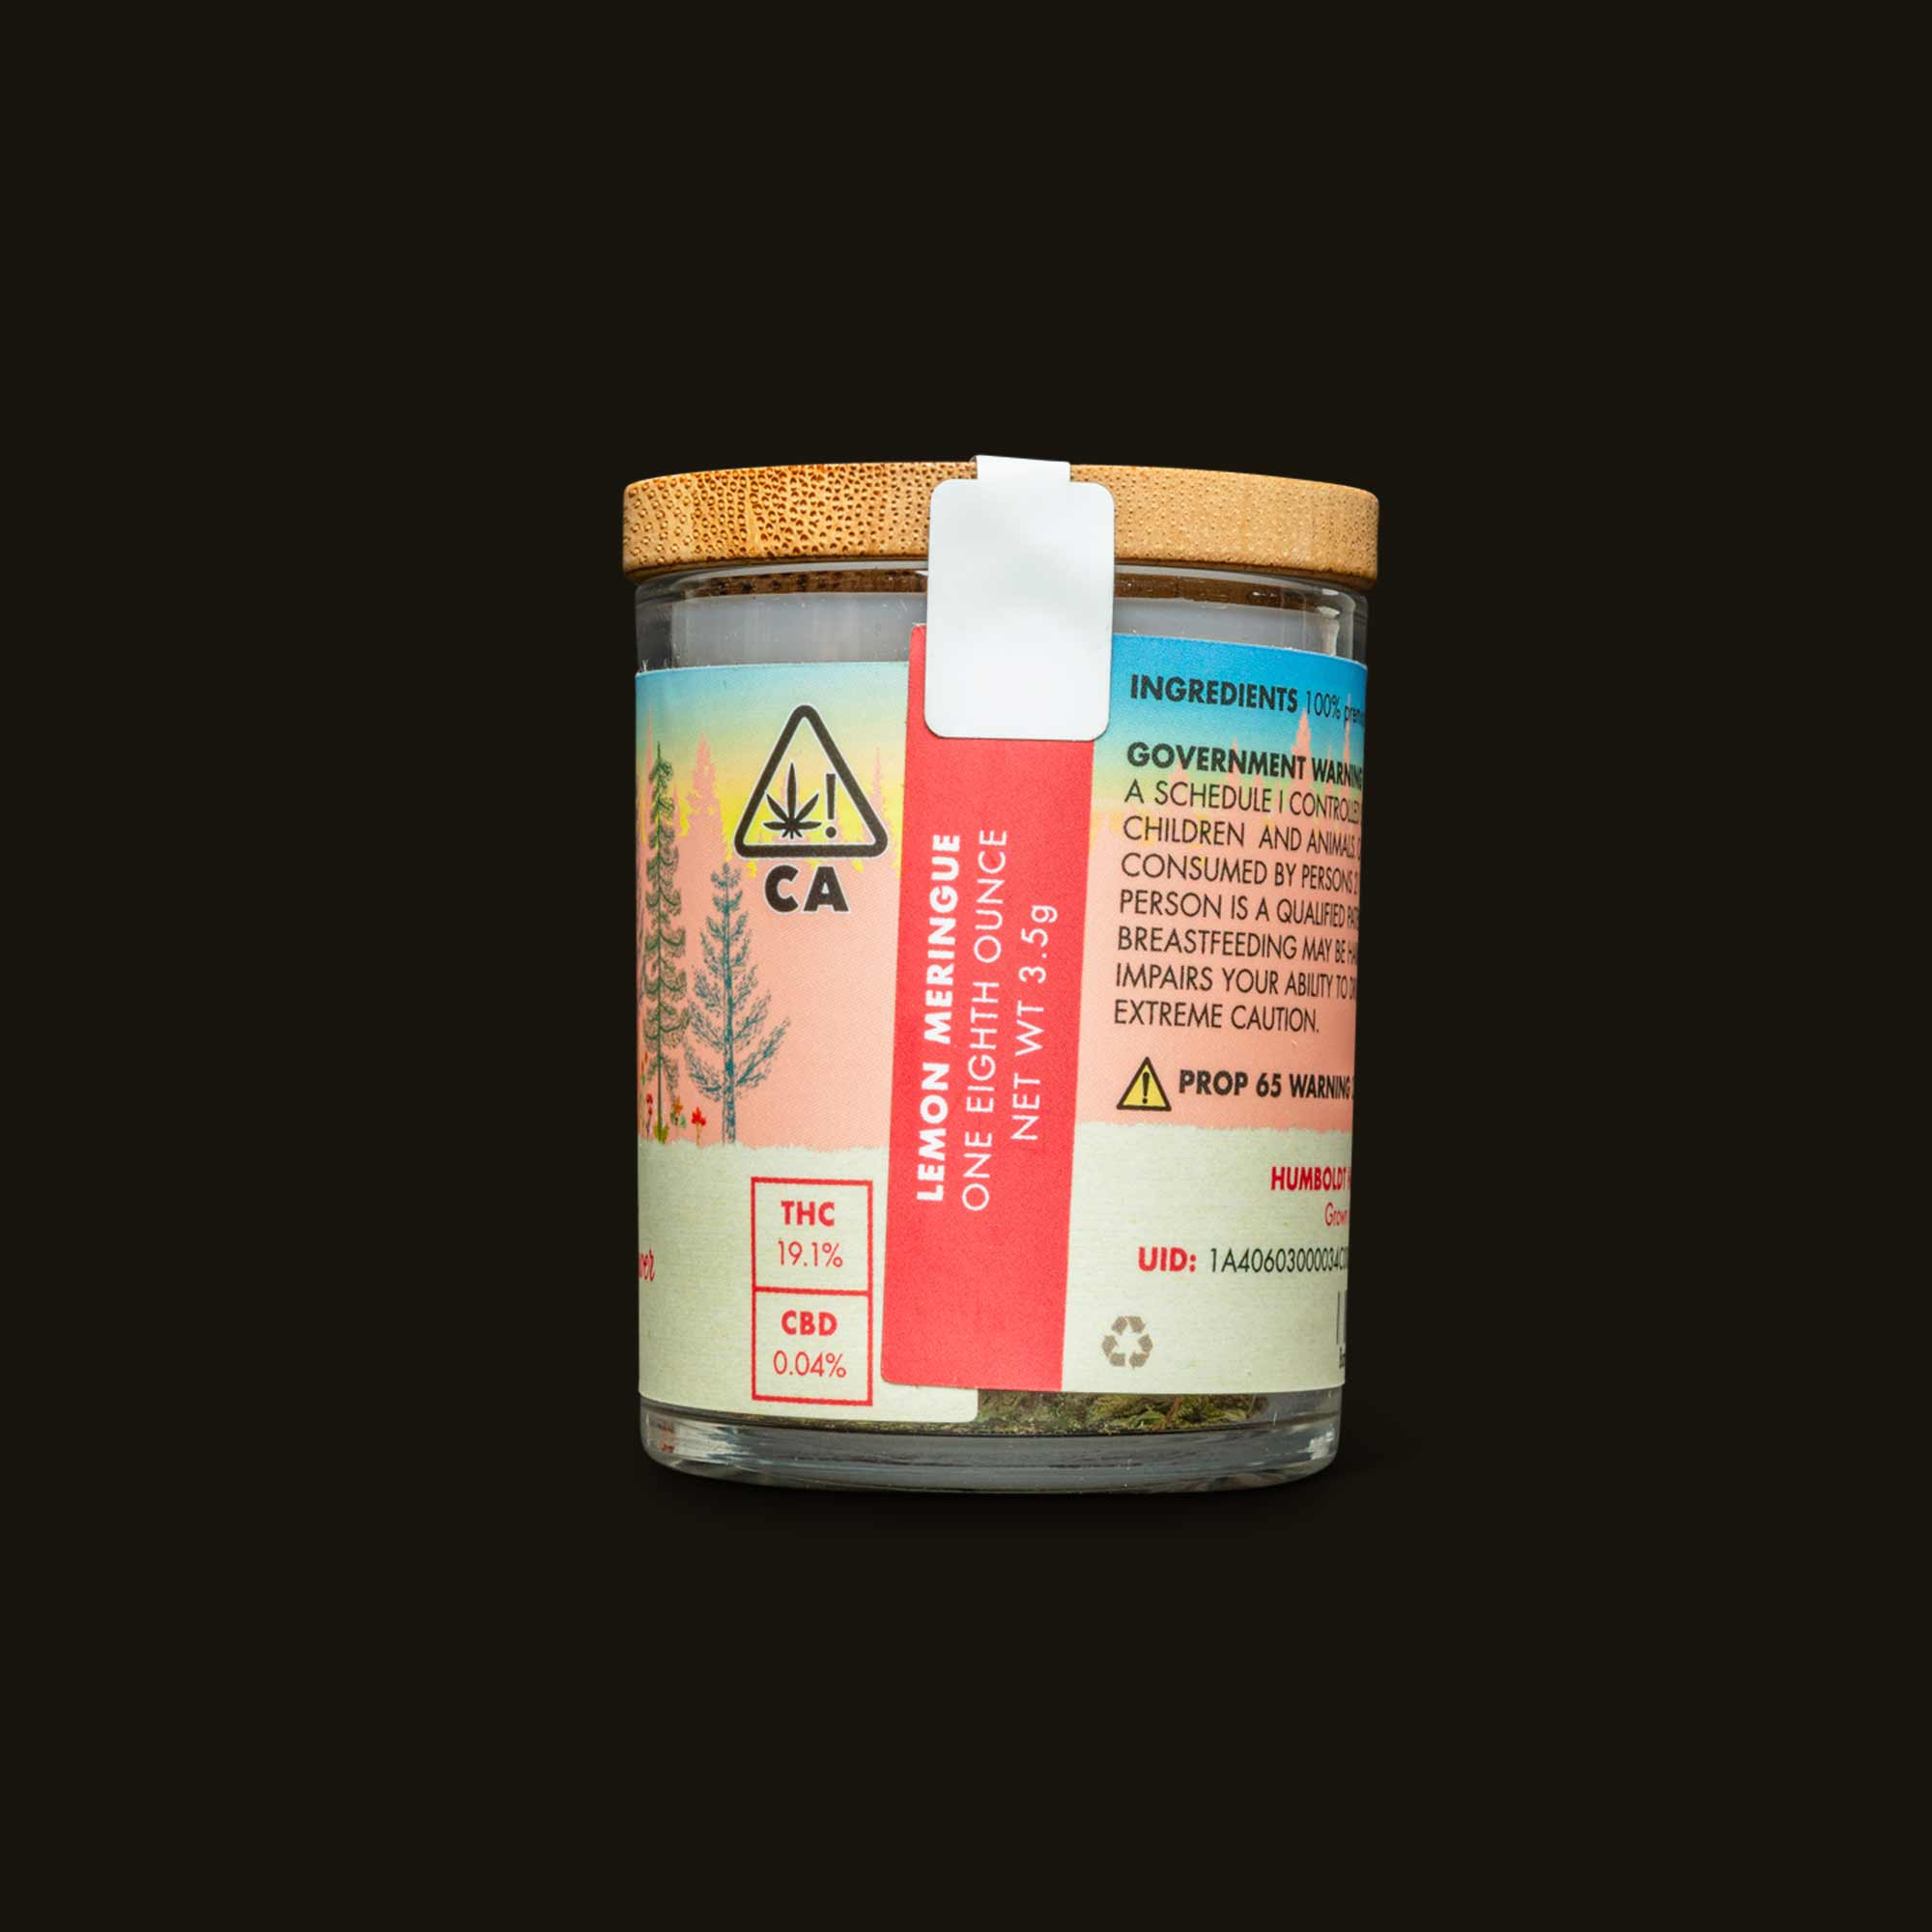 Container back label of Lemon Meringue weed